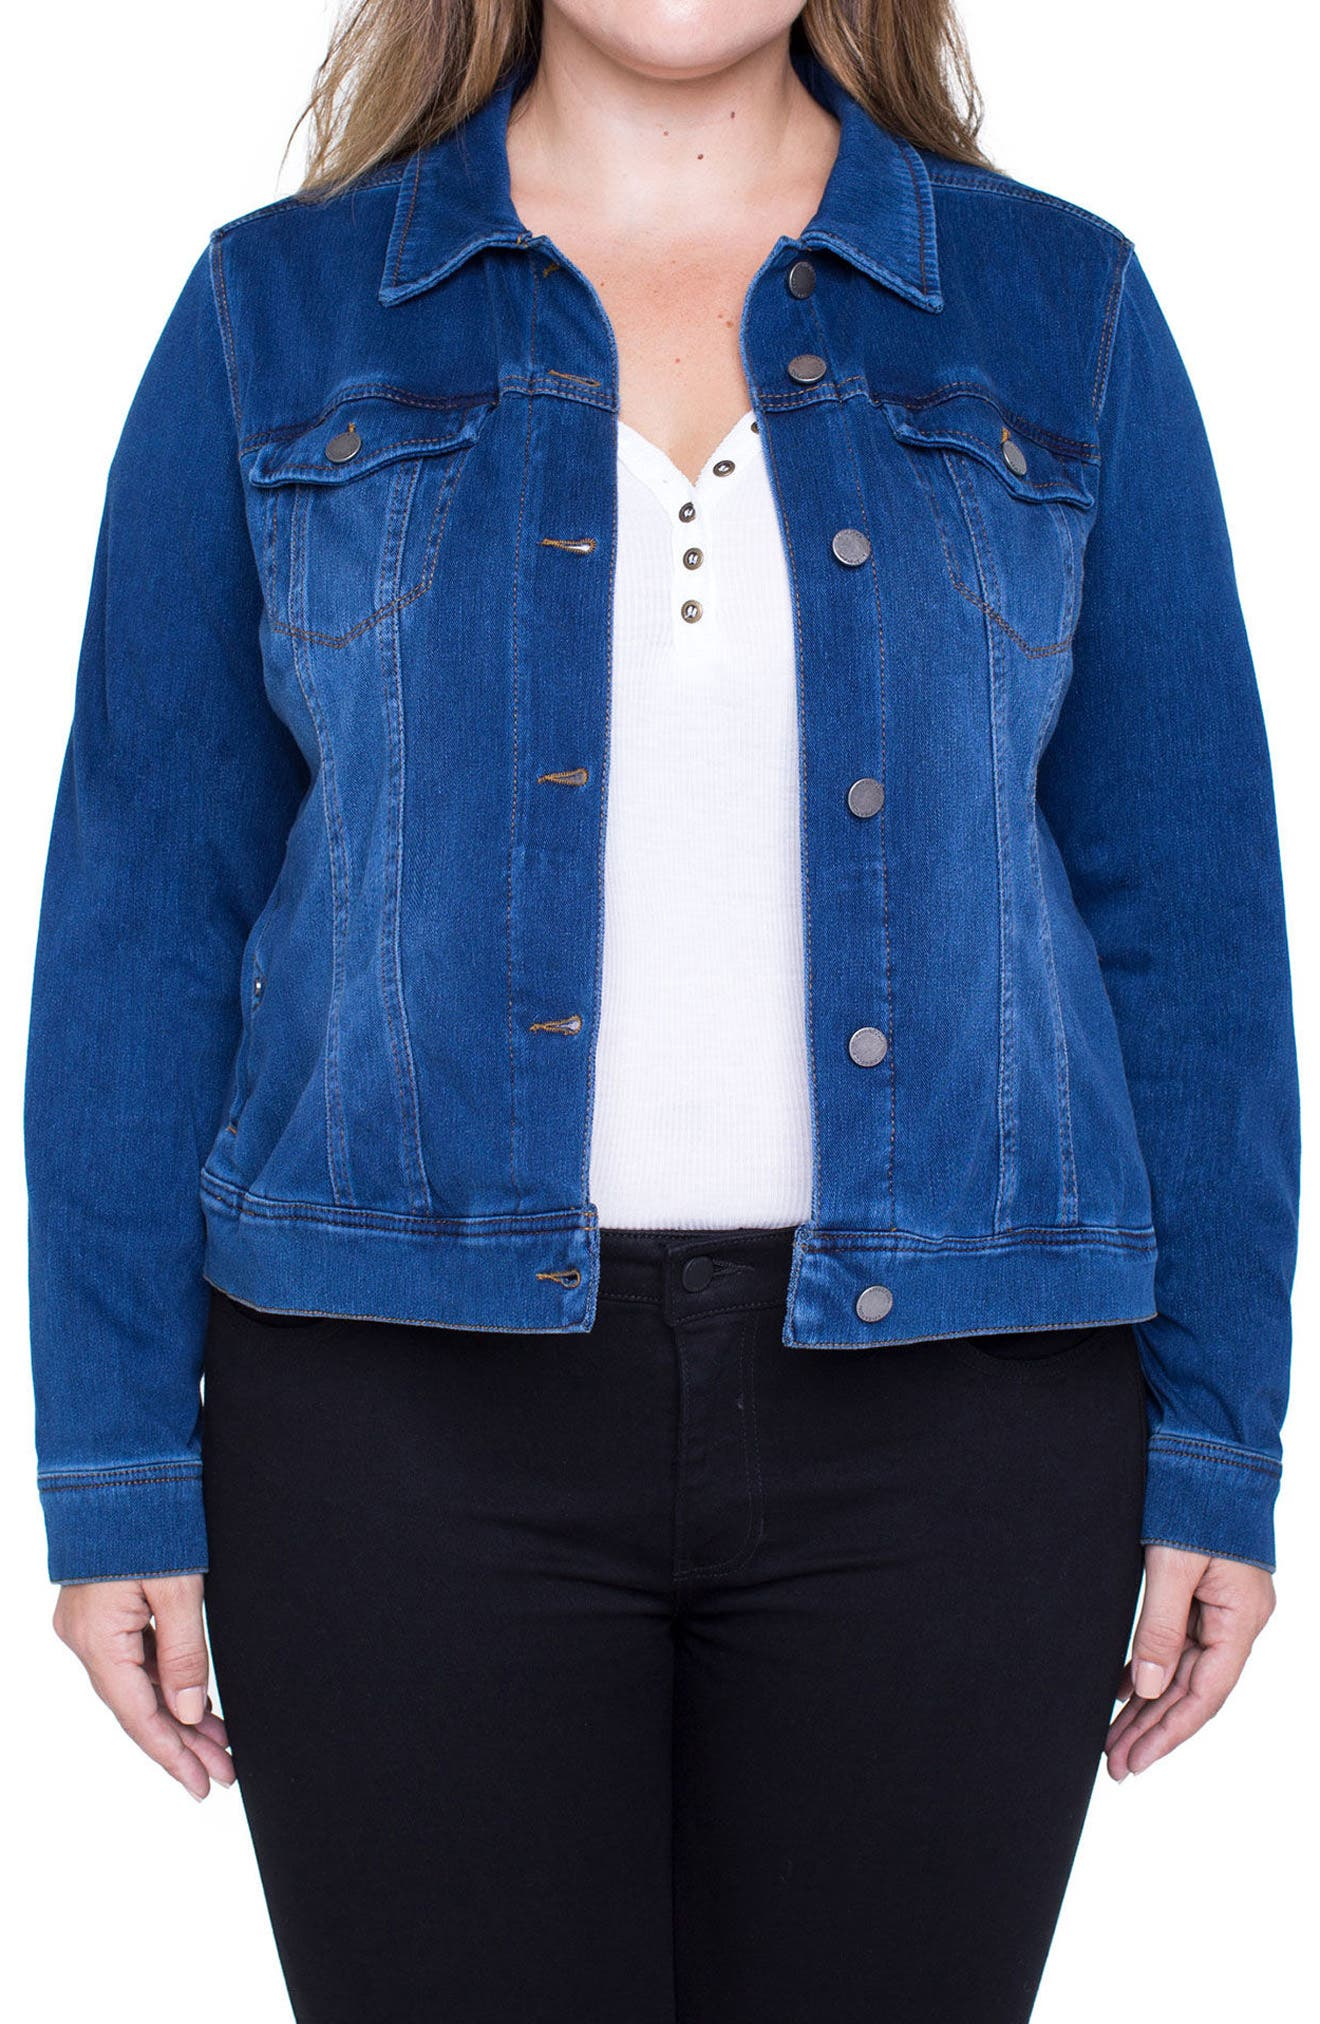 Alternate Image 1 Selected - Liverpool Jeans Company Denim Knit Jacket (Plus Size)